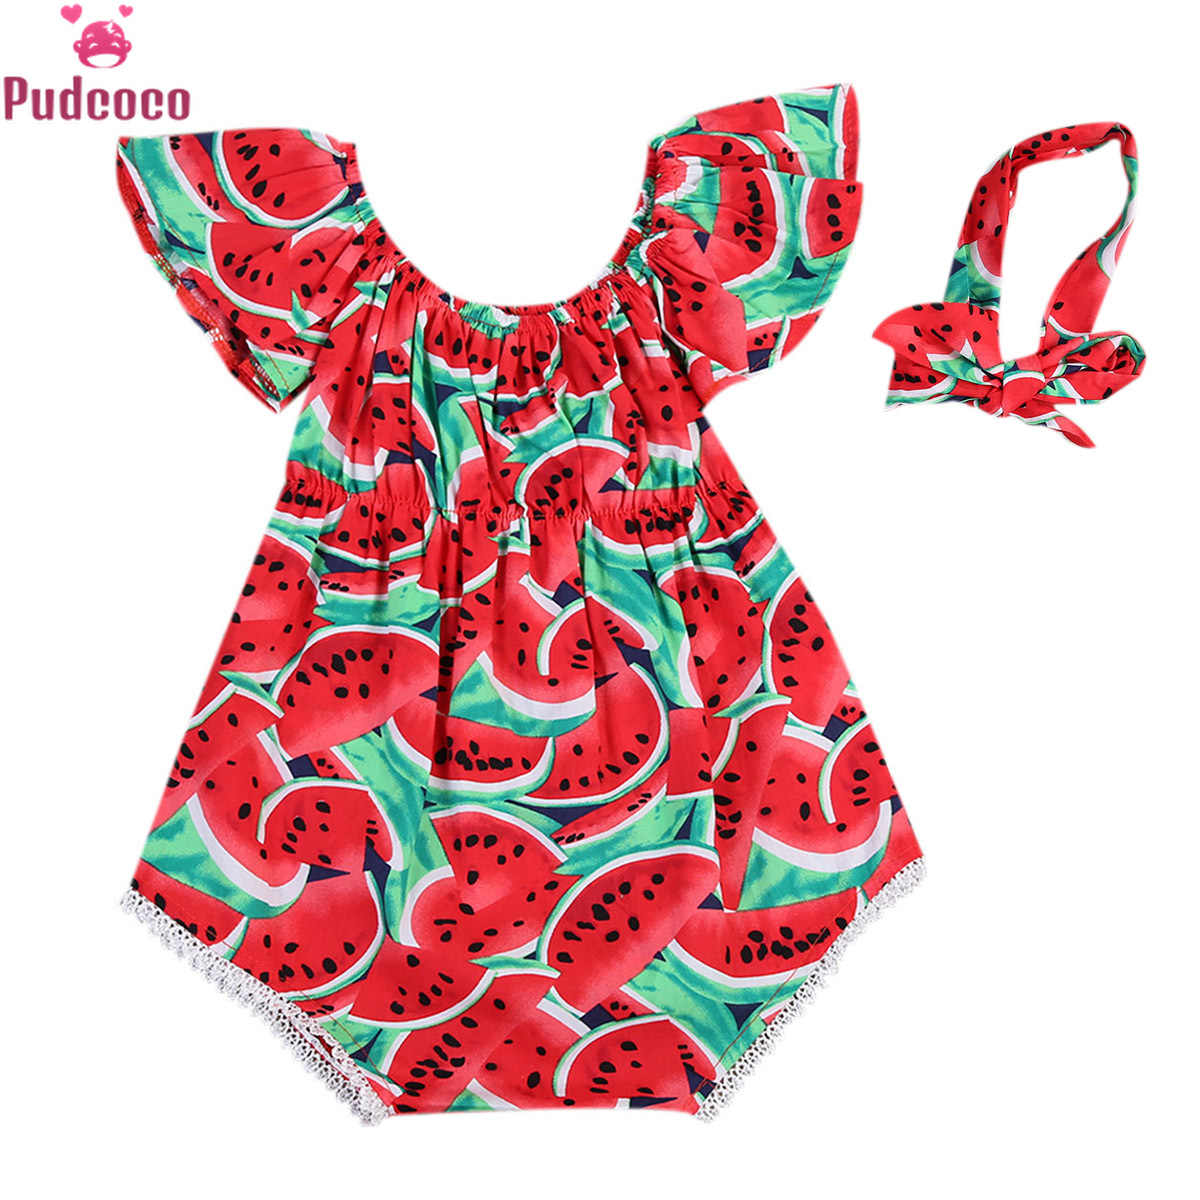 a3040d13a540 Detail Feedback Questions about Newborn Clothes Baby Romper Infant Girls  Watermelon Clothing Bodysuit Jumpsuit Headband Bebes Girls Outfits Playsuit  on ...